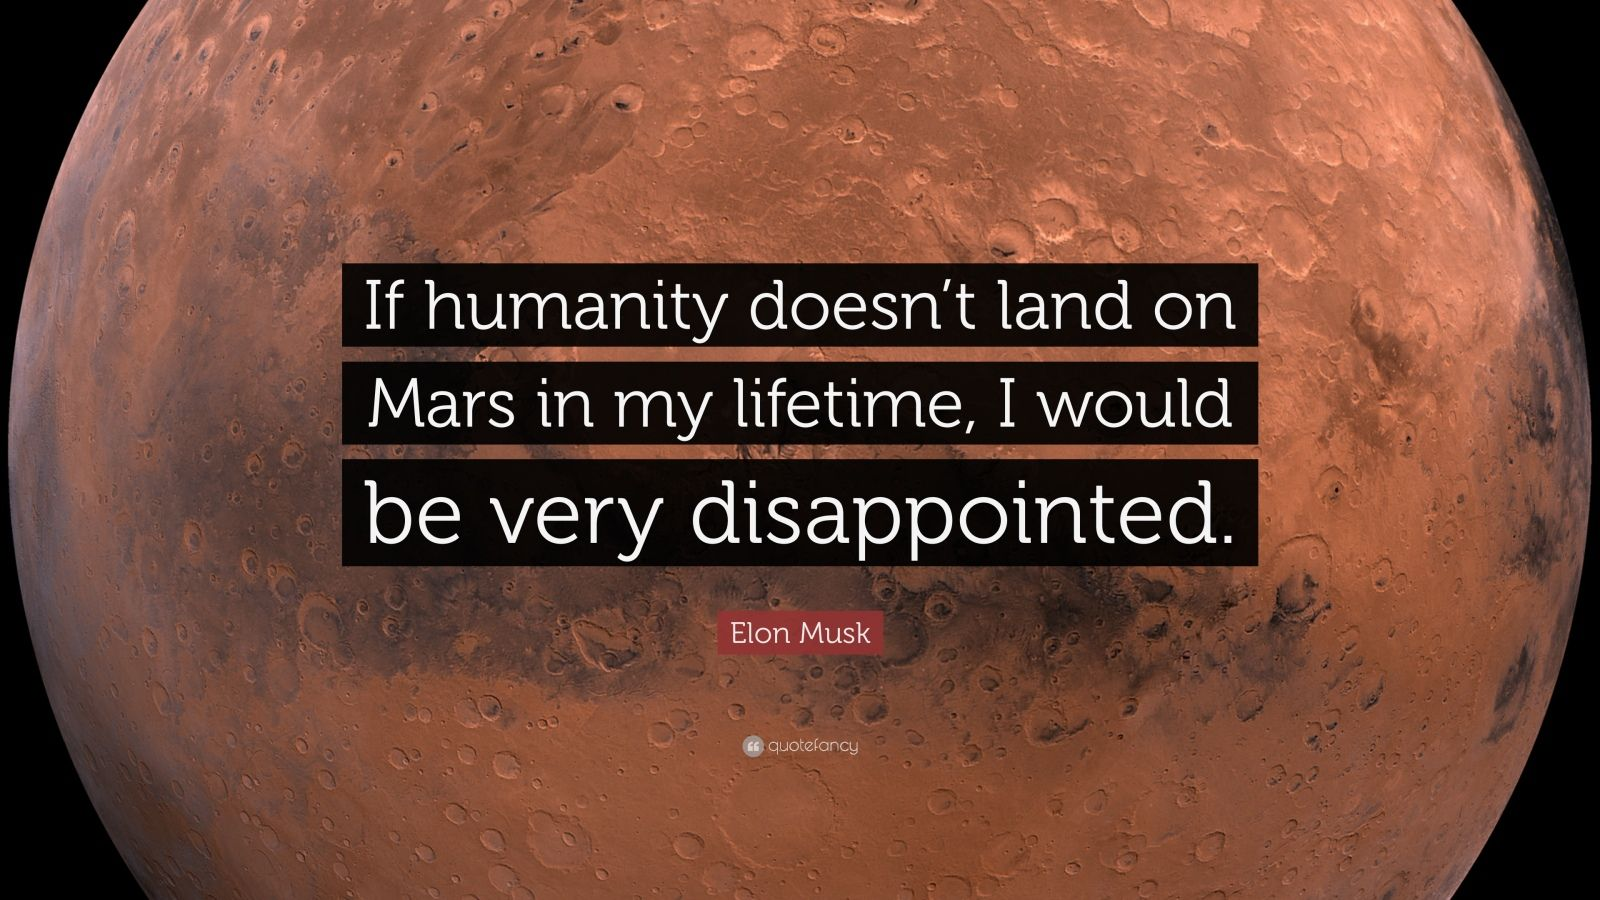 mars rover quote - photo #2